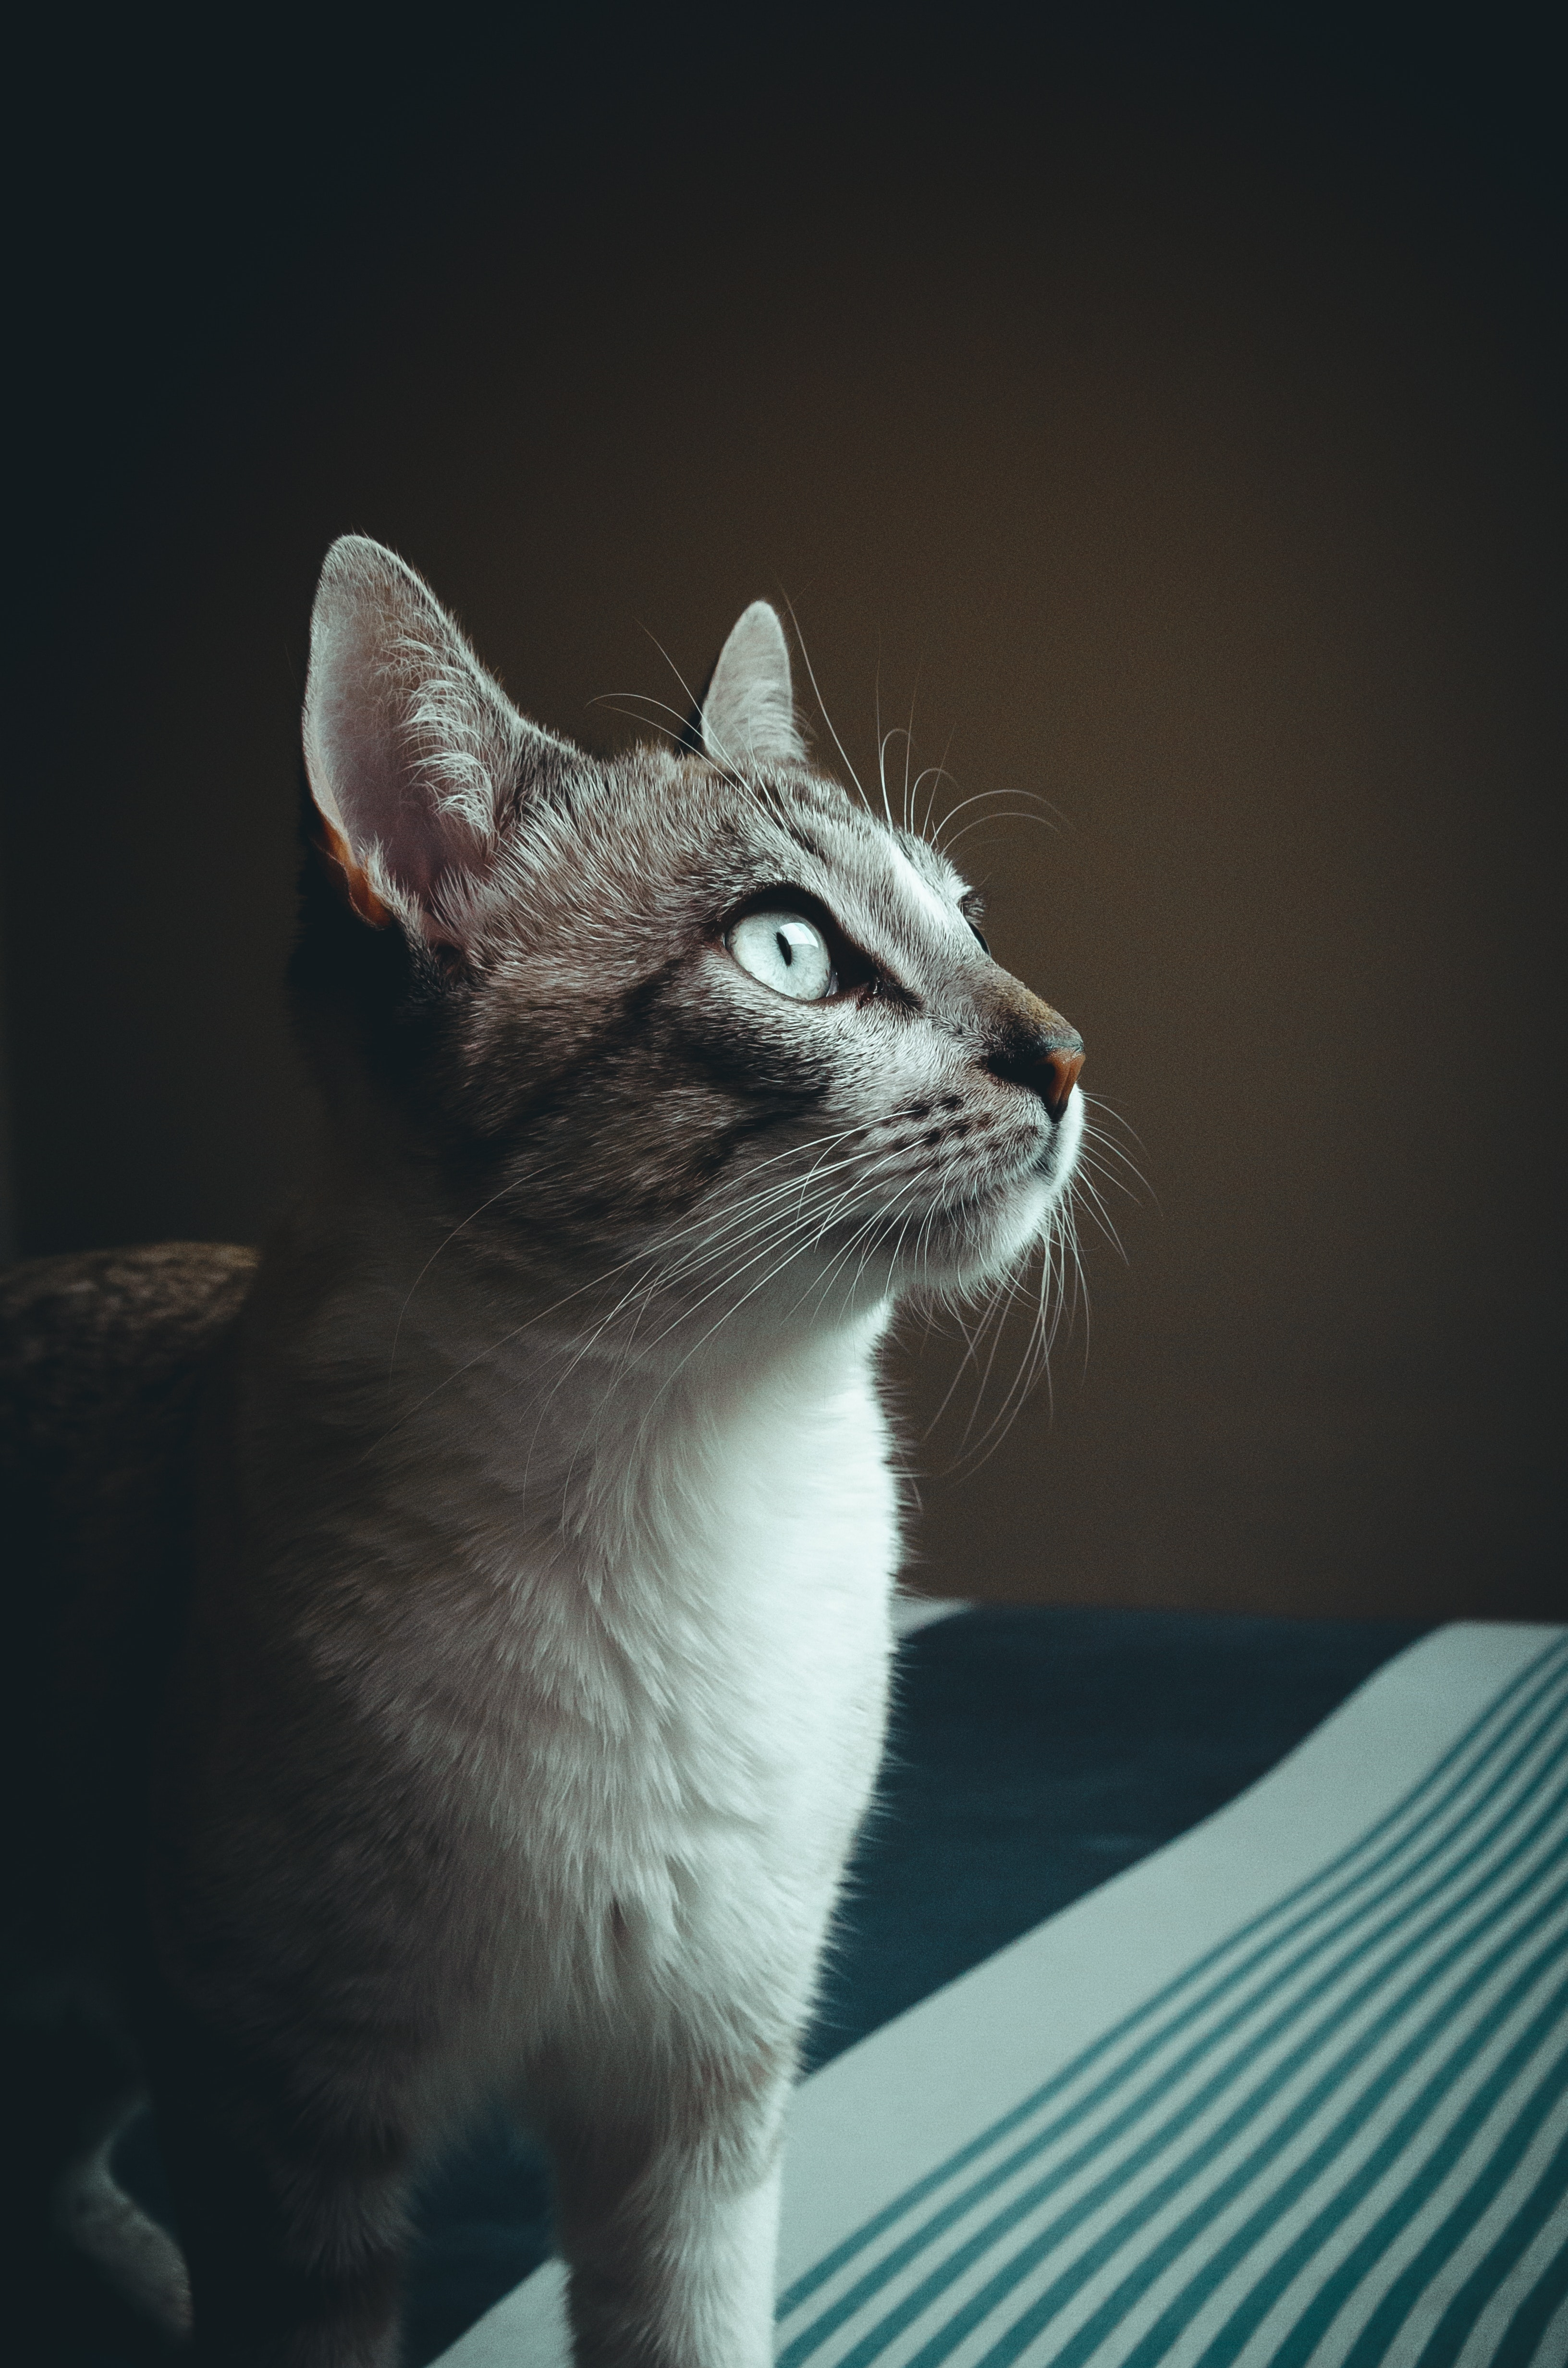 Close-up Photography of Cat, Adorable, Funny, Whiskers, Sit, HQ Photo